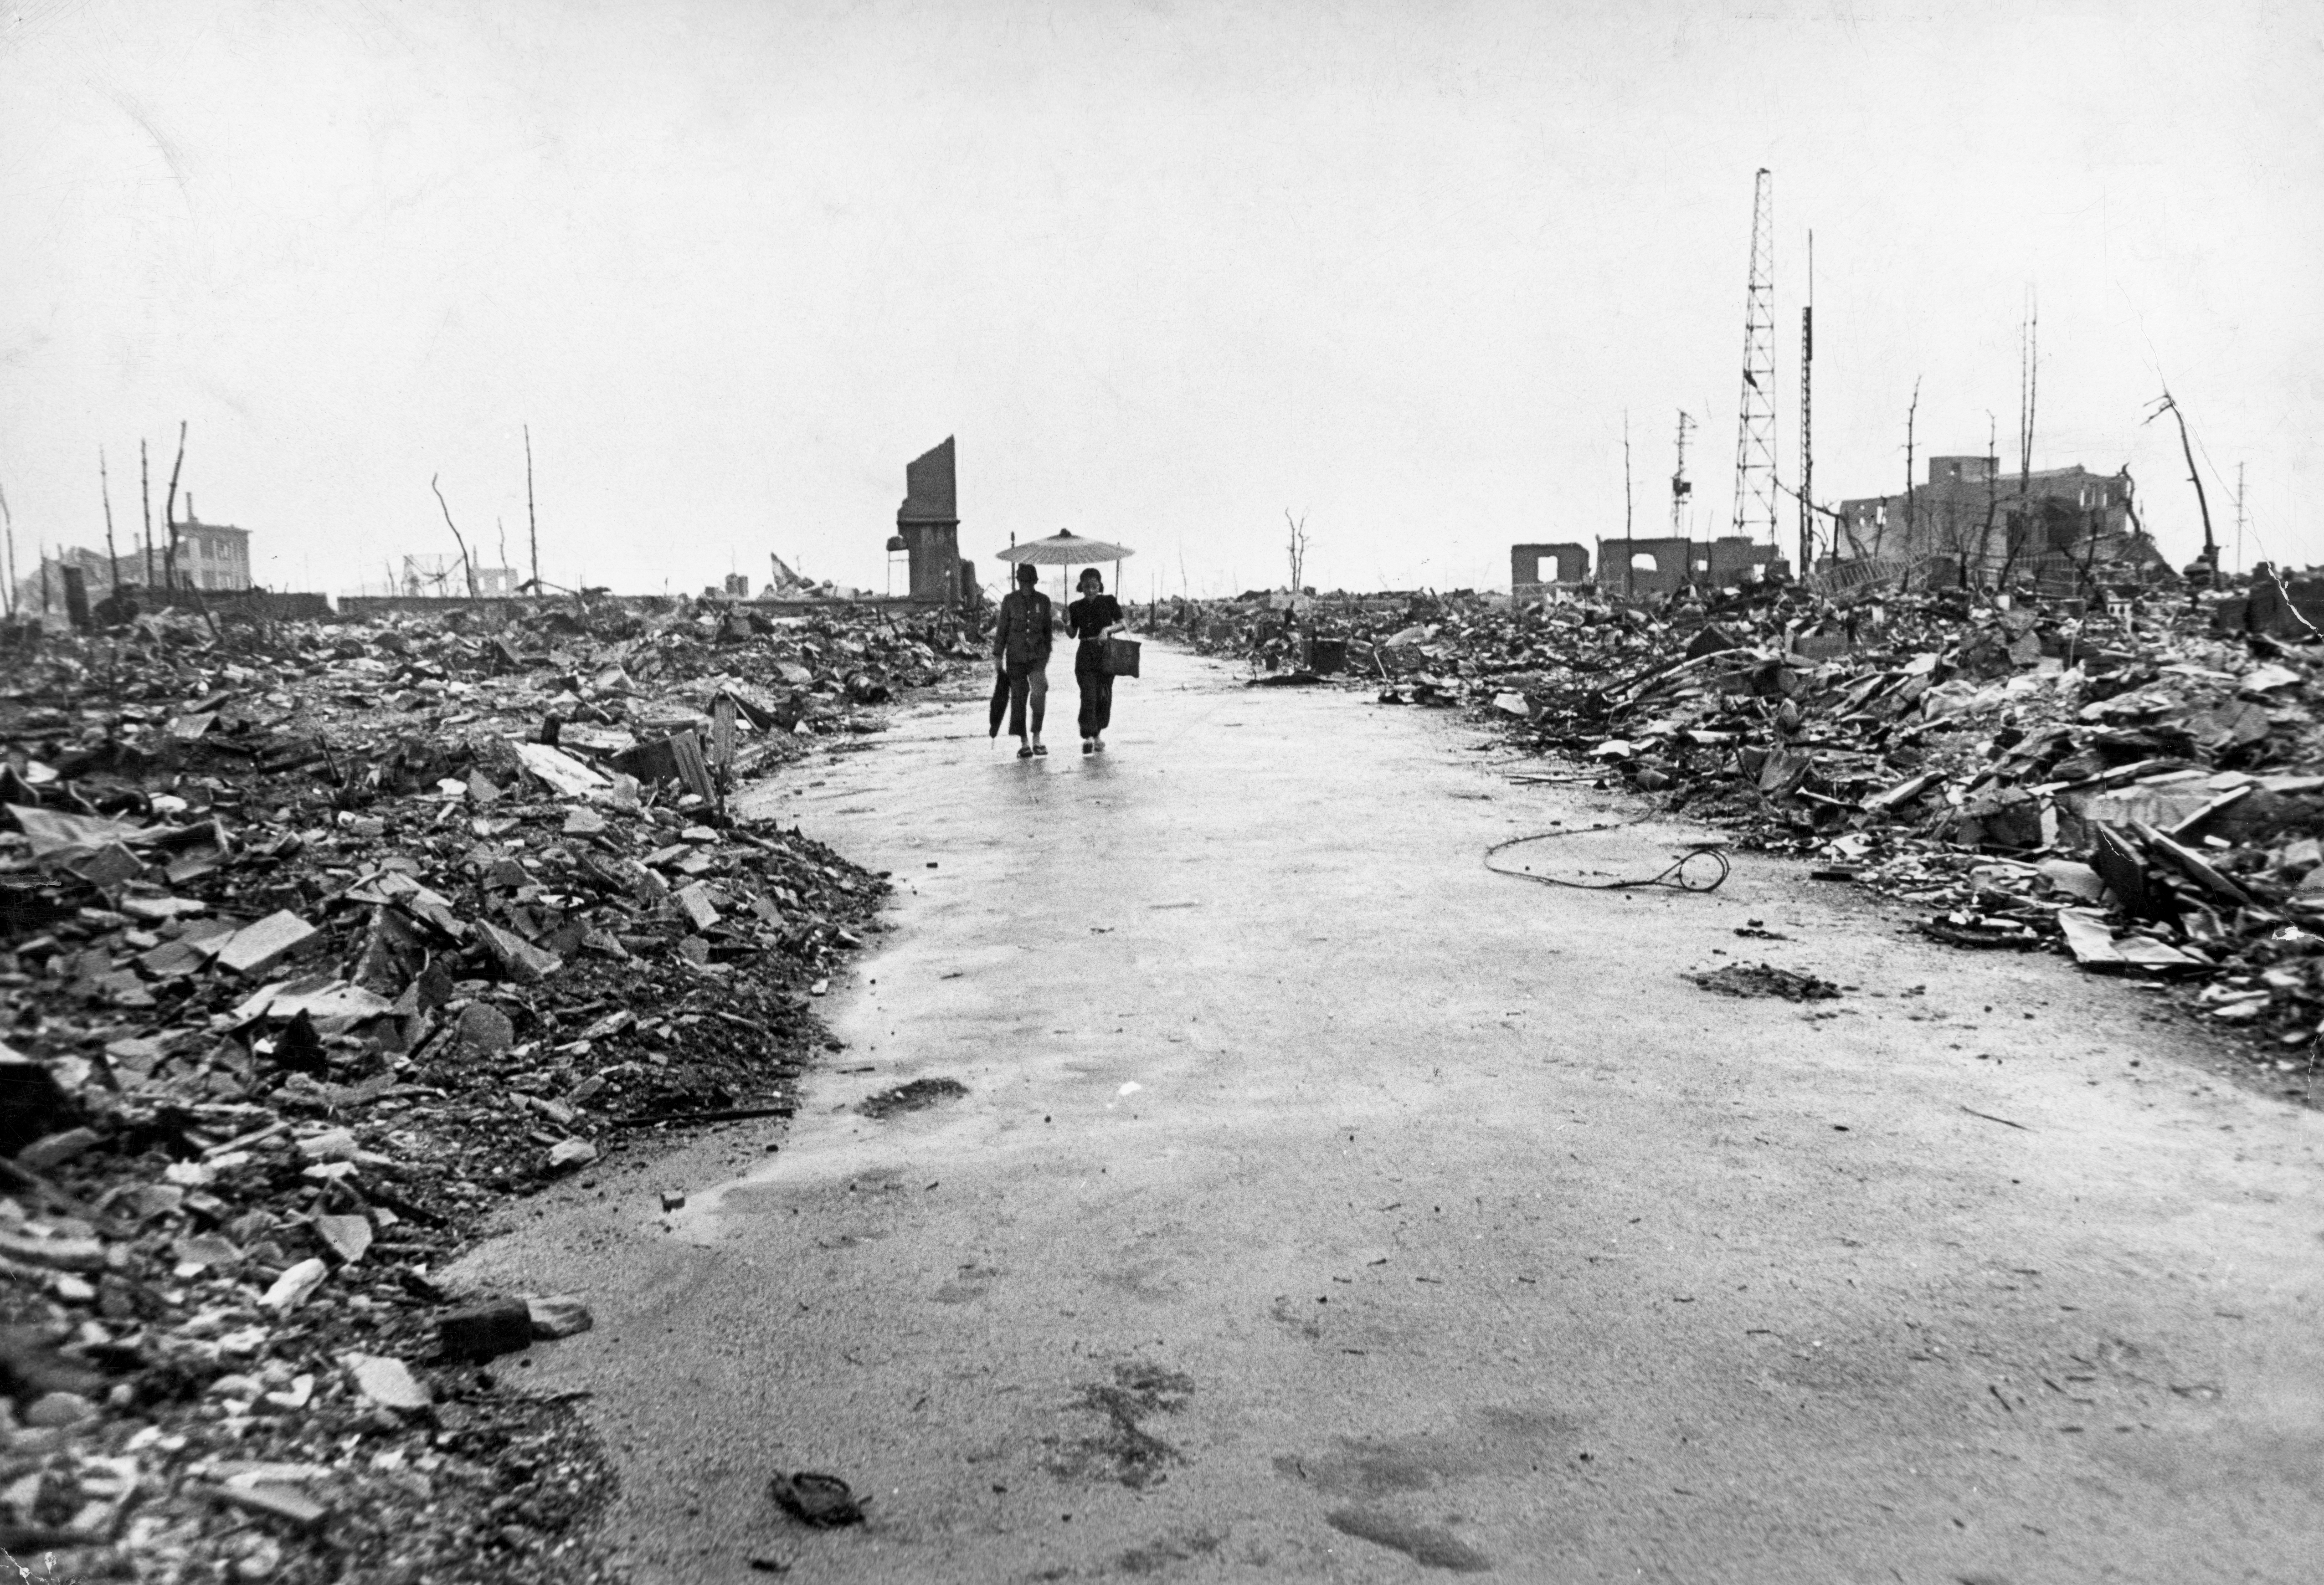 Hiroshima in ruins following the atomic bomb blast.